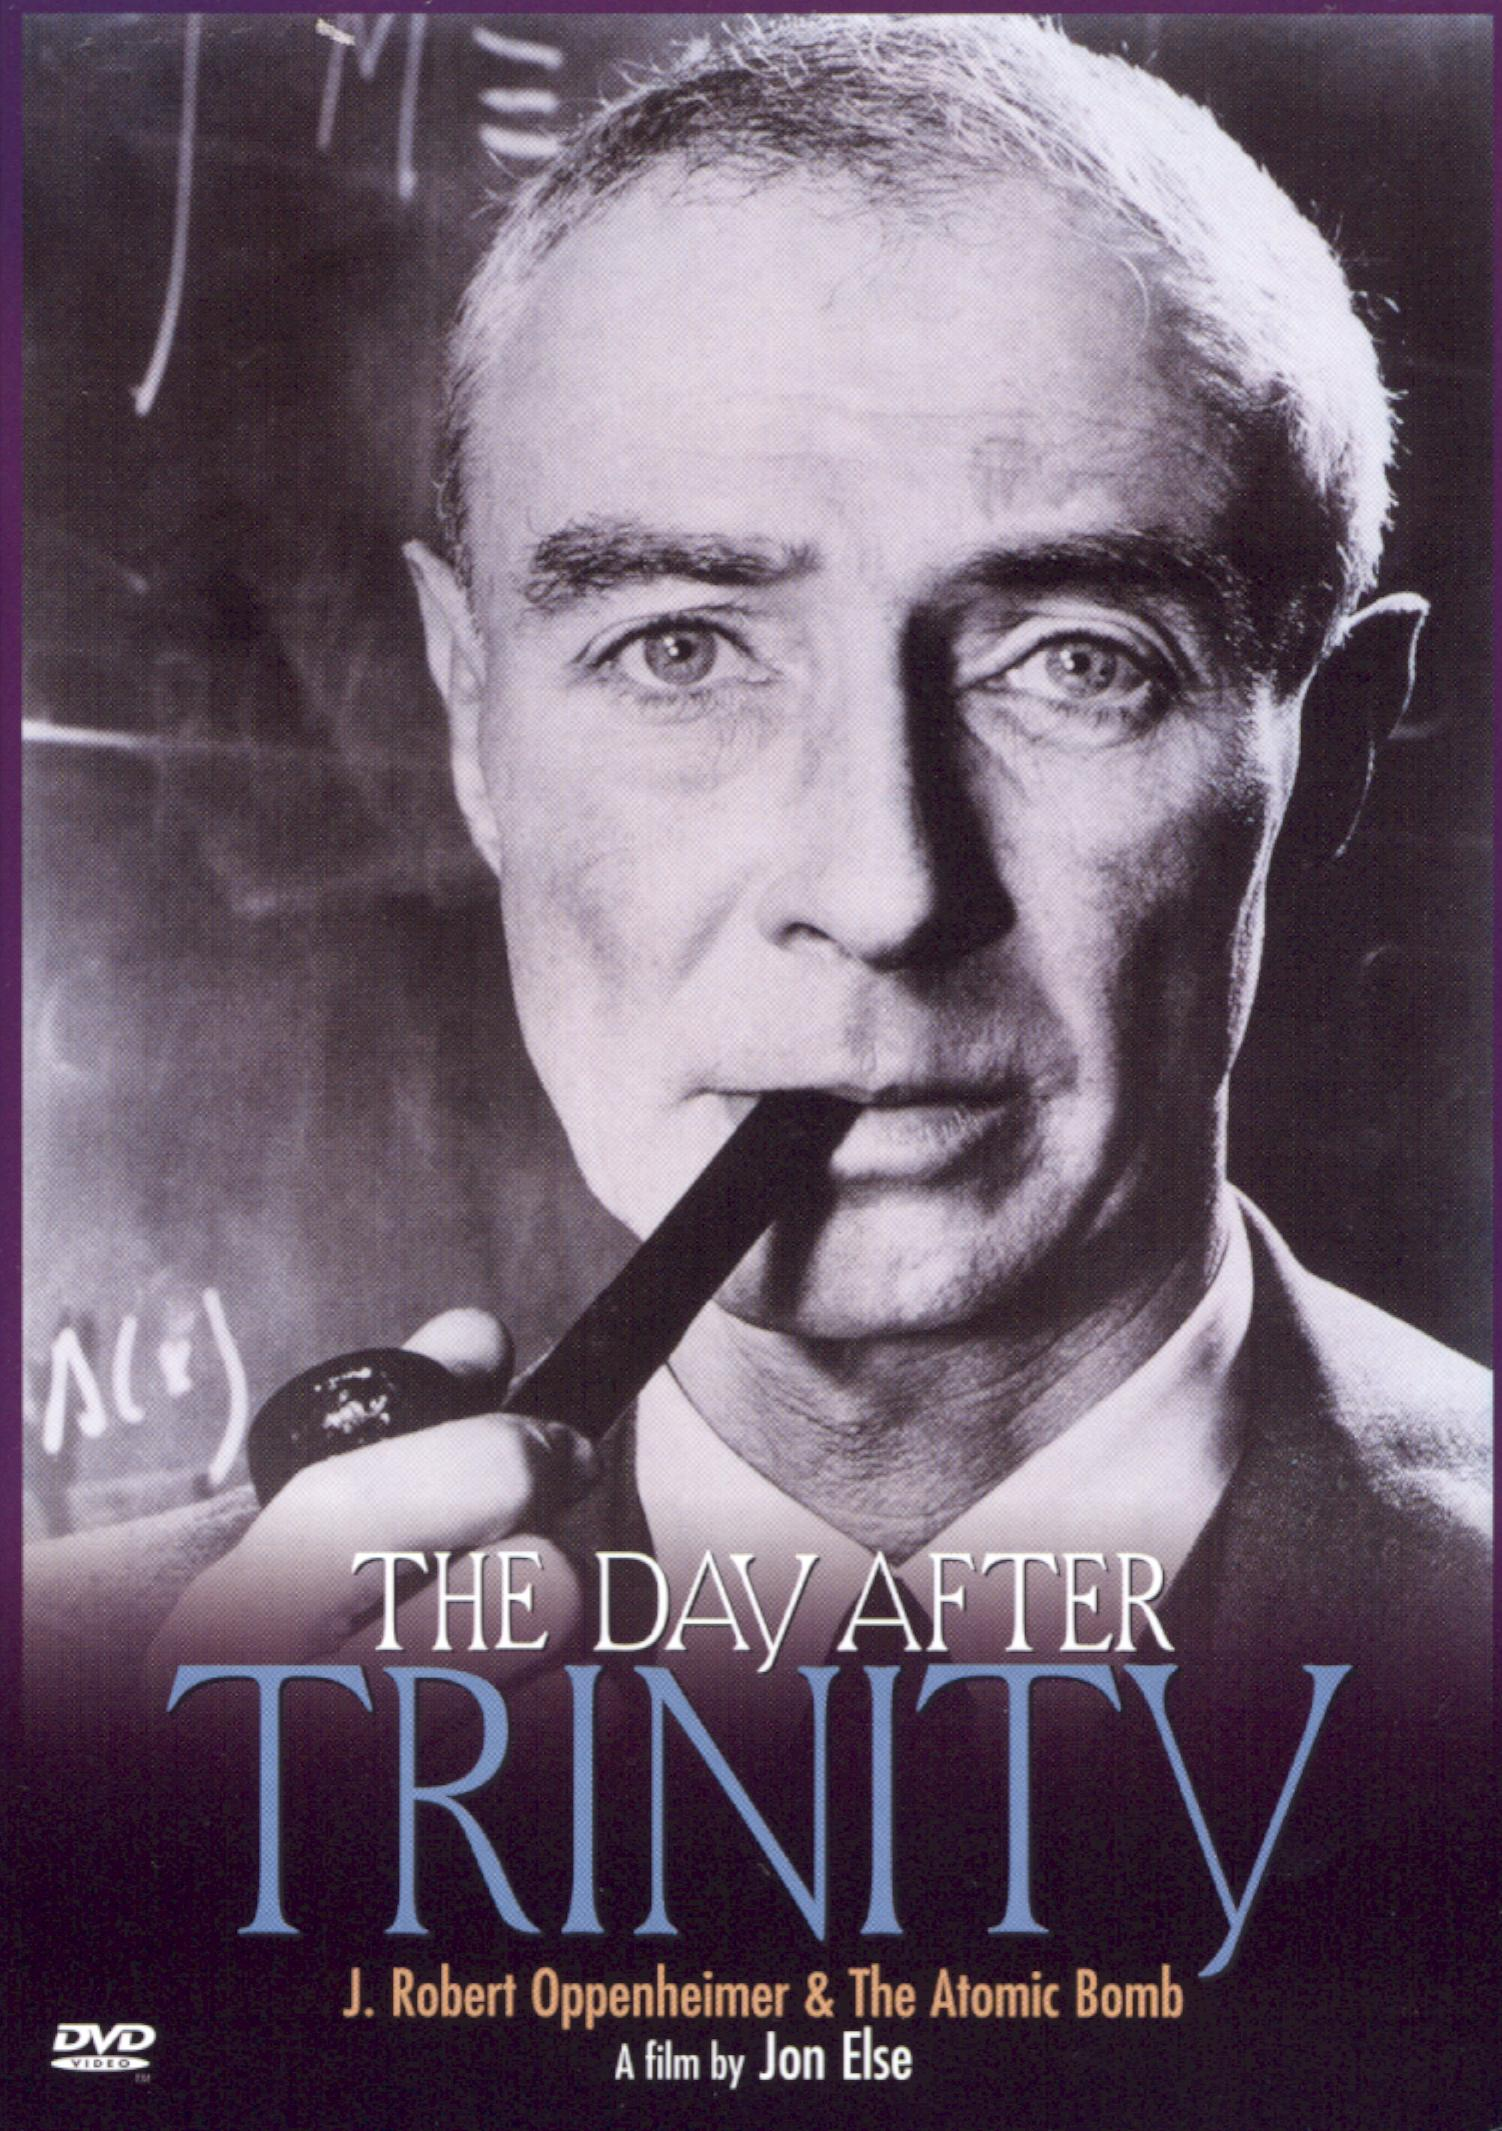 The Day After Trinity: Oppenheimer & the Atomic Bomb